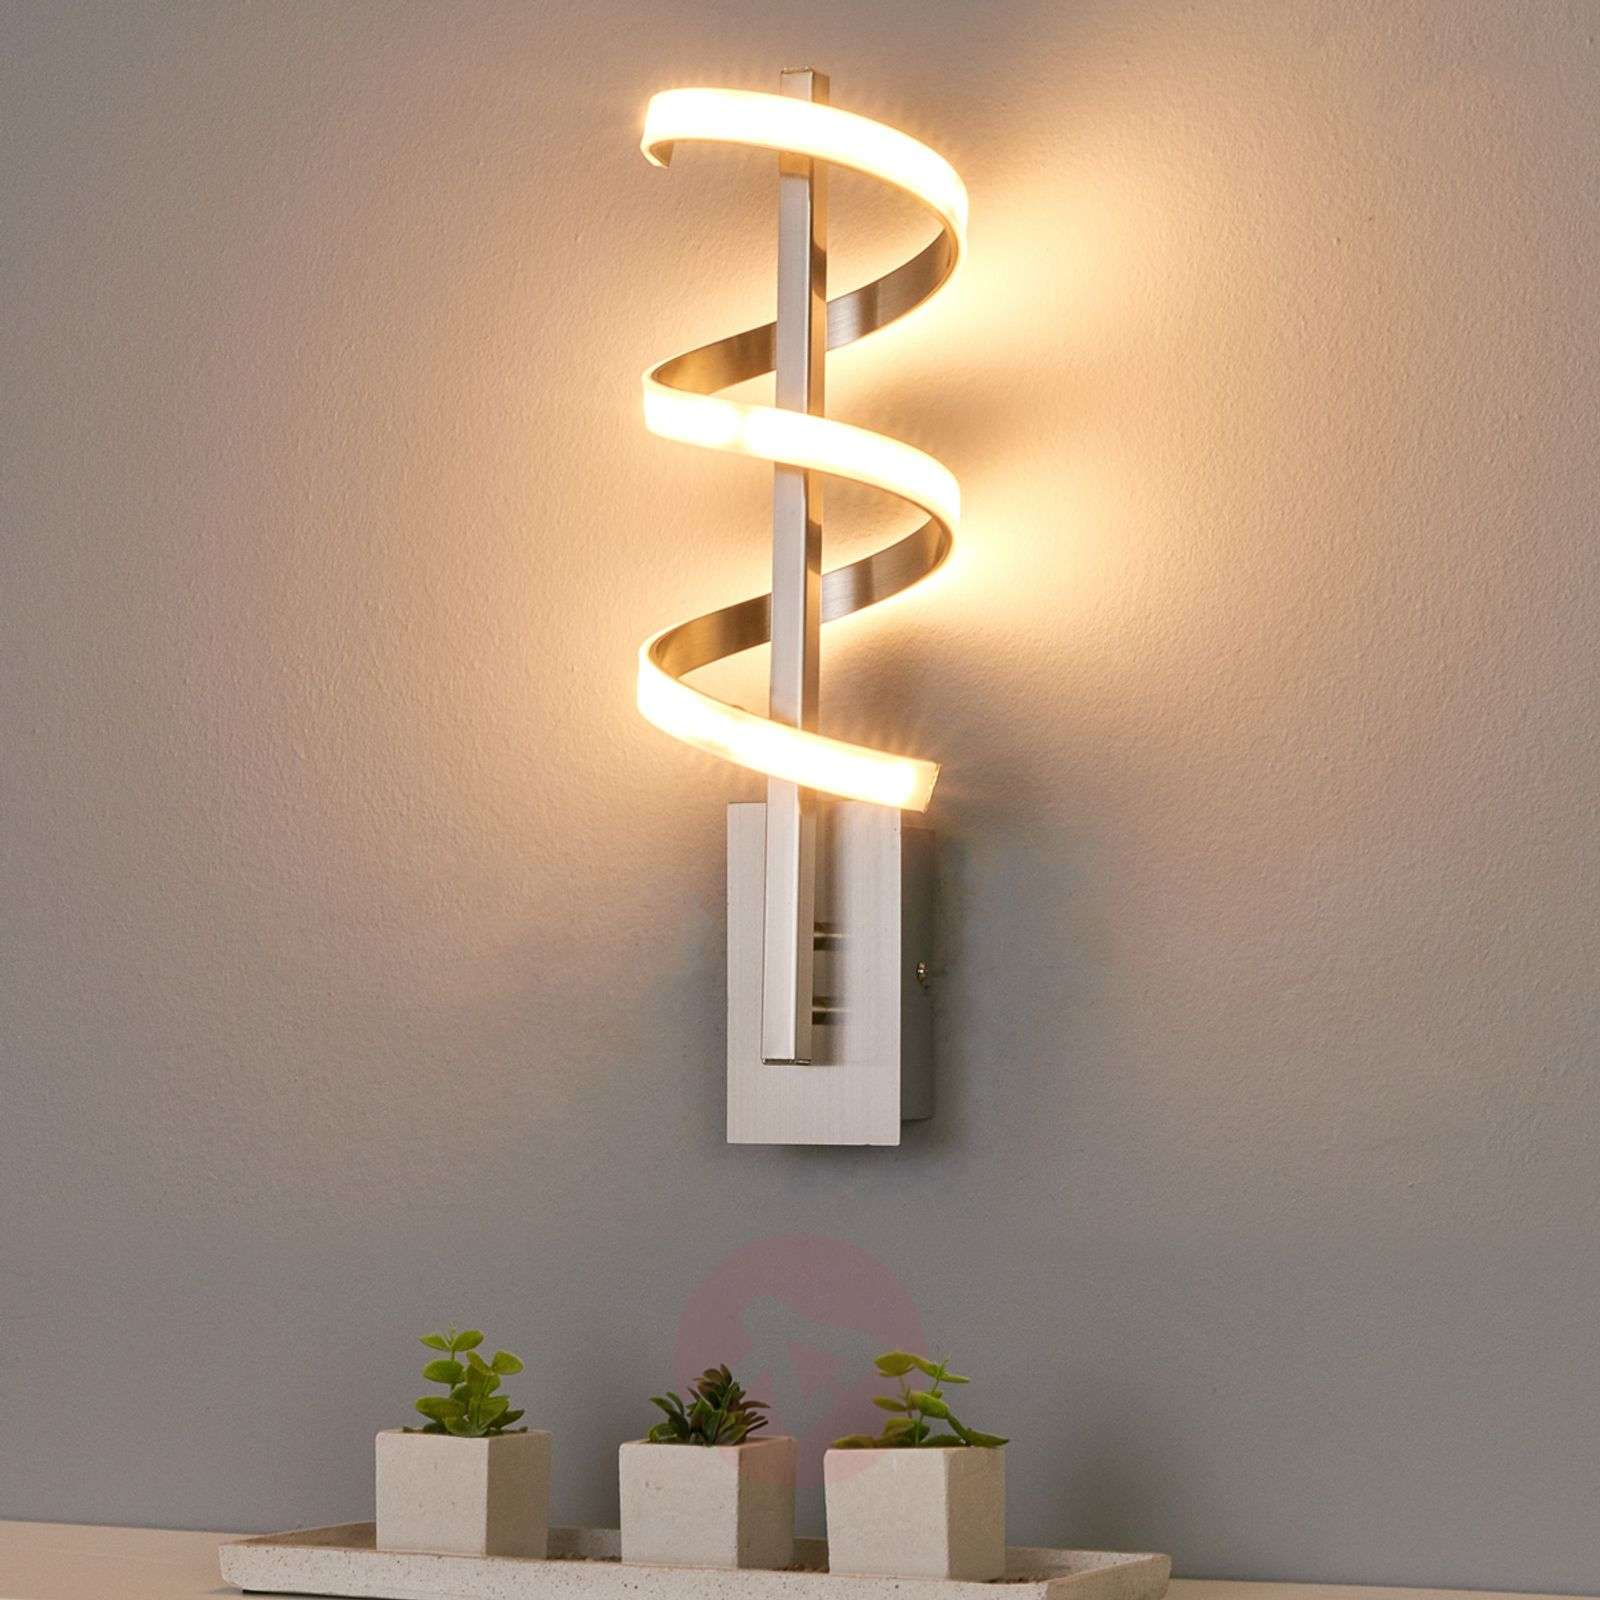 Twisted LED wall light Pierre-9985029-01